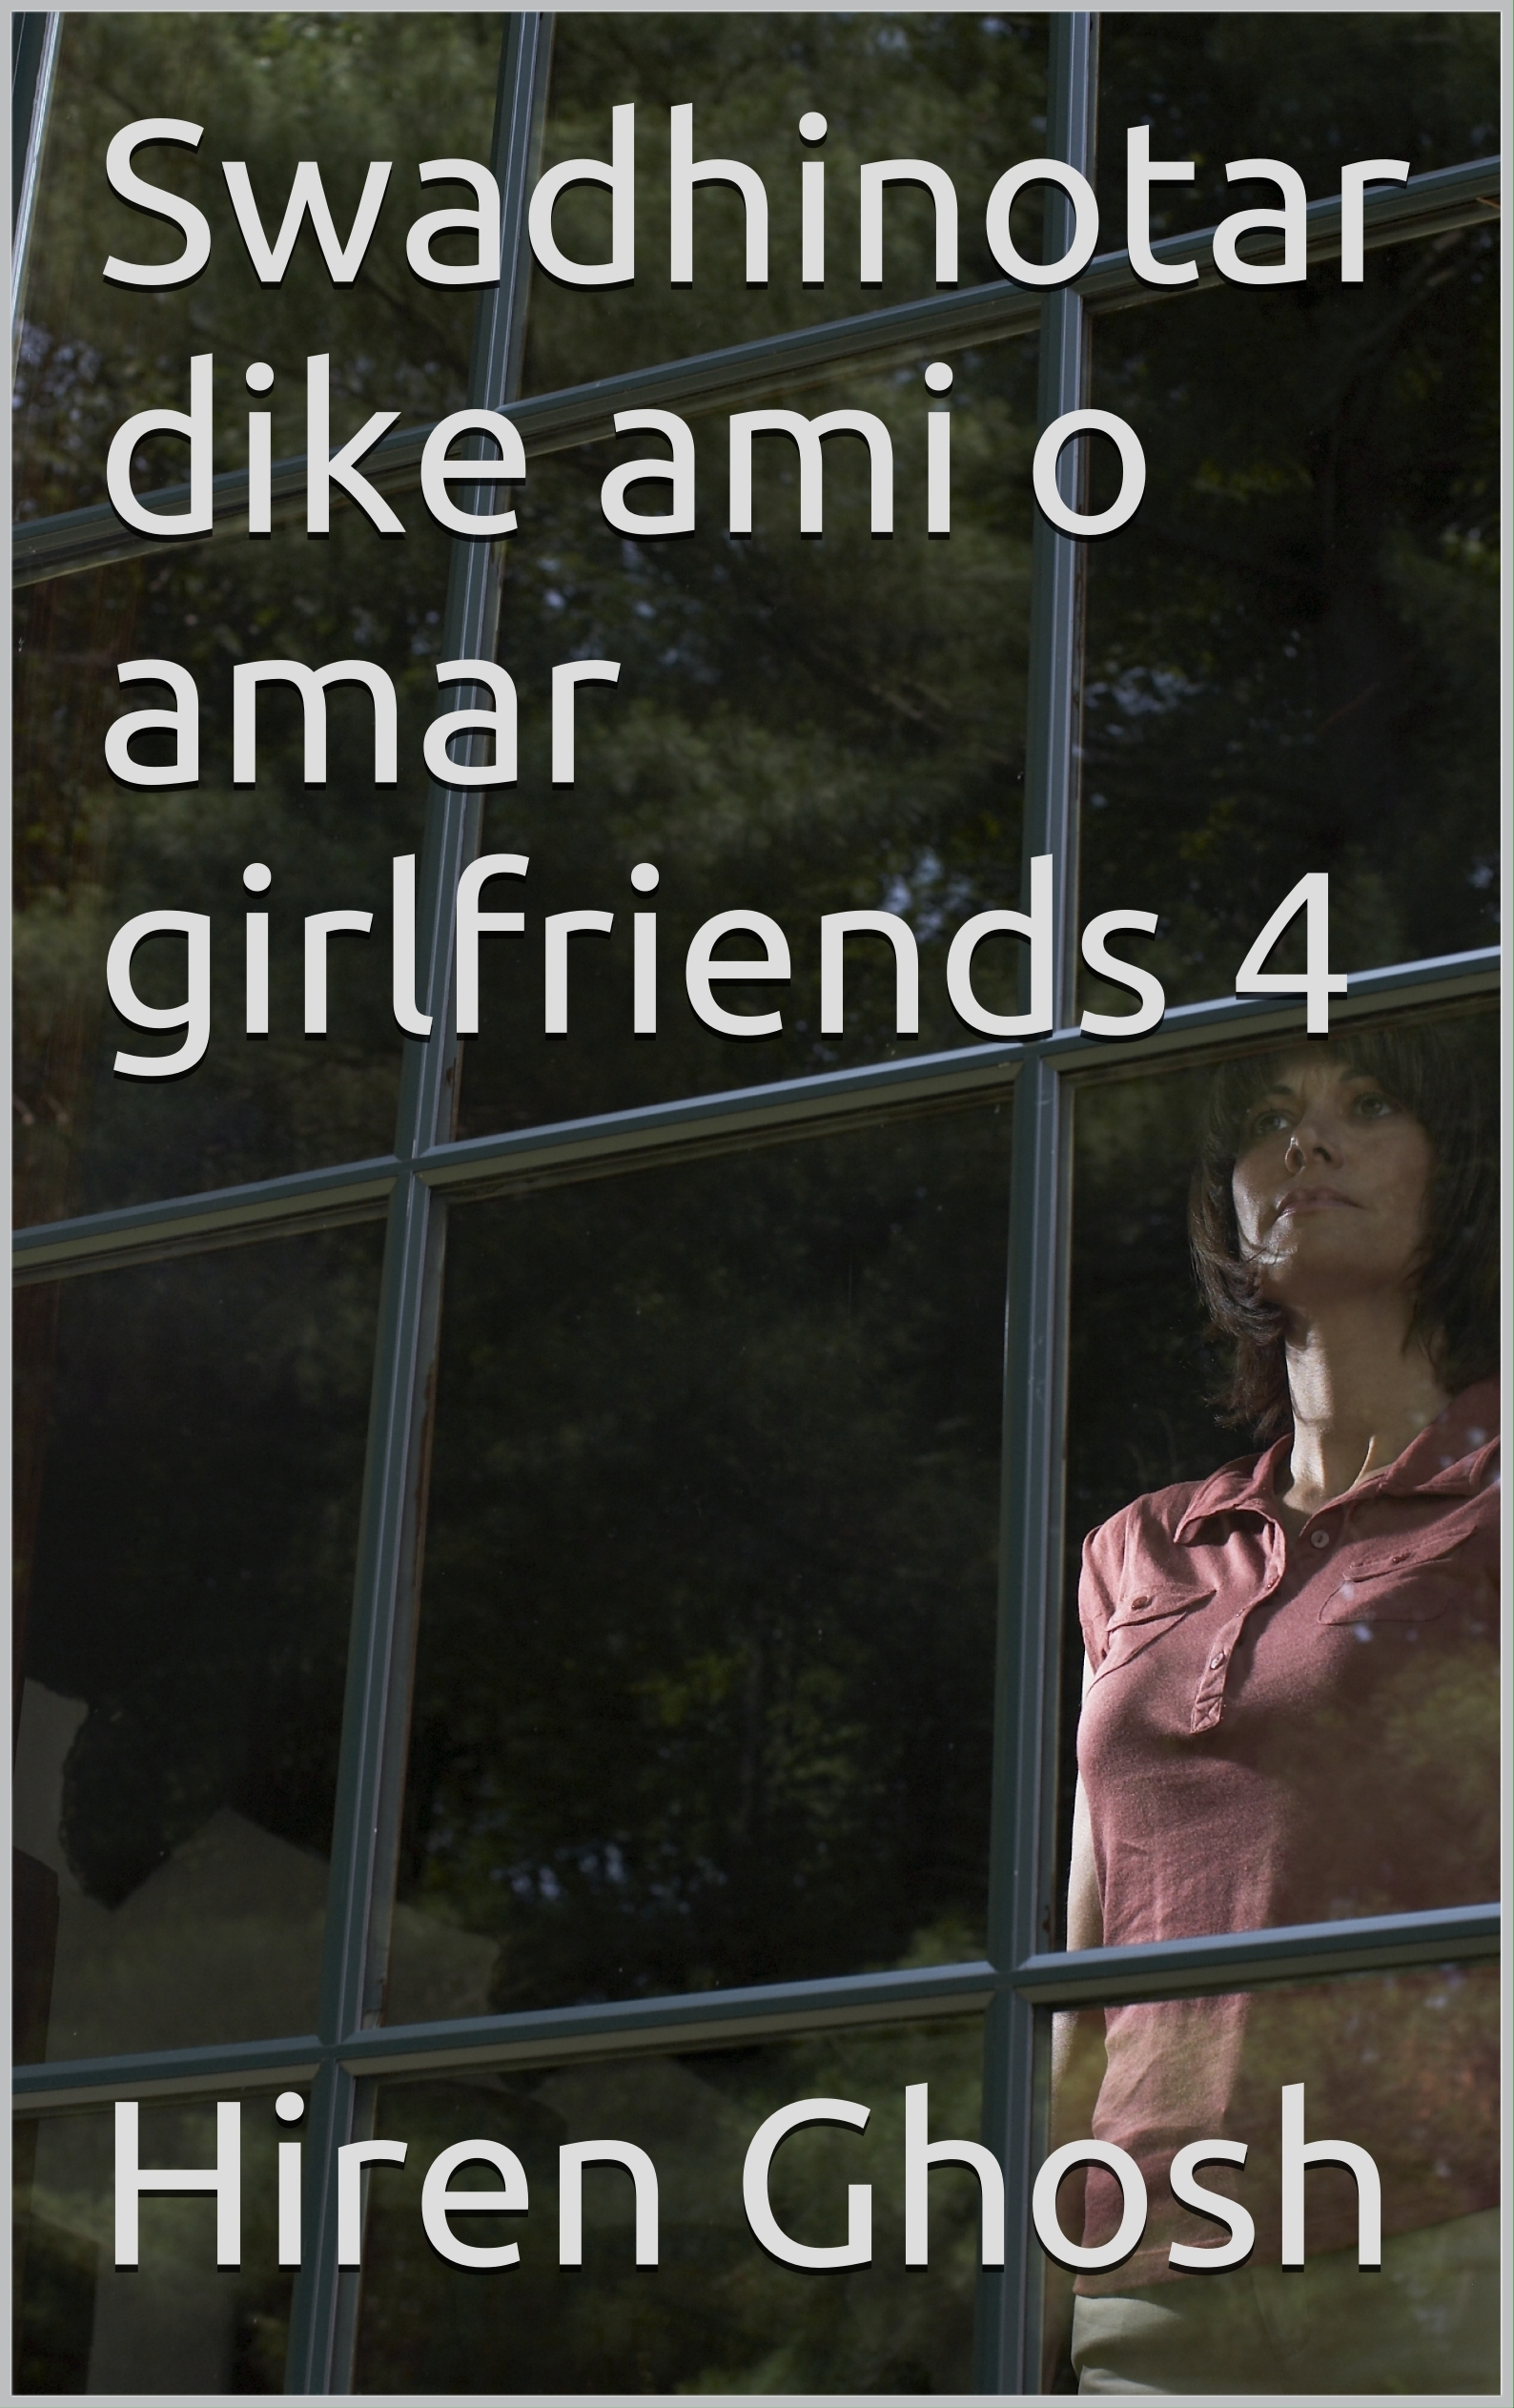 Swadhinotar dike ami o amar girlfriends 4  by  Hiren Ghosh